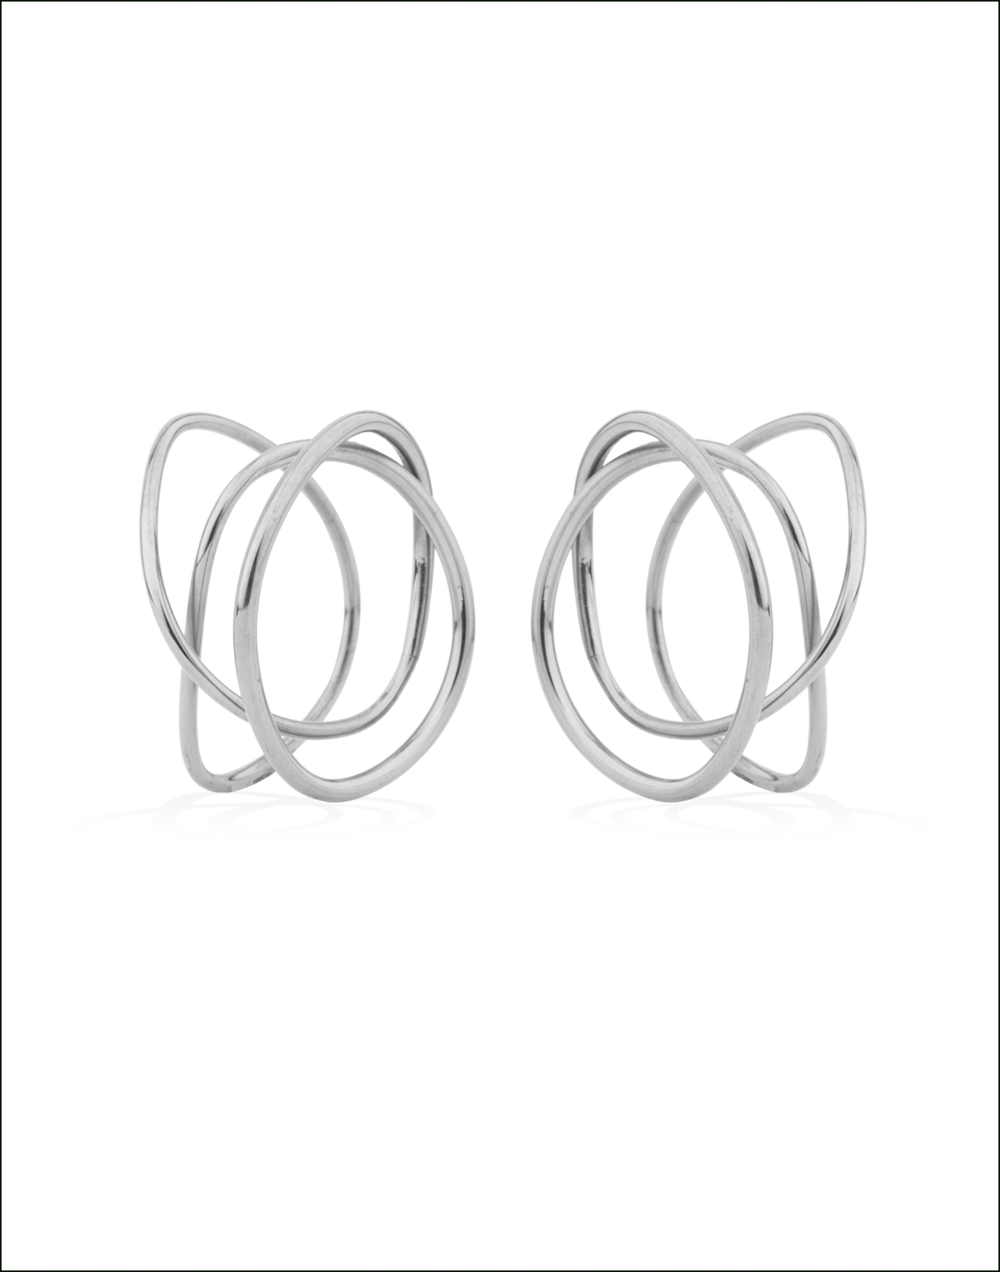 Completedworks-Earrings-Silver-An-Interval-Between-Thunderstorms-2-1.png